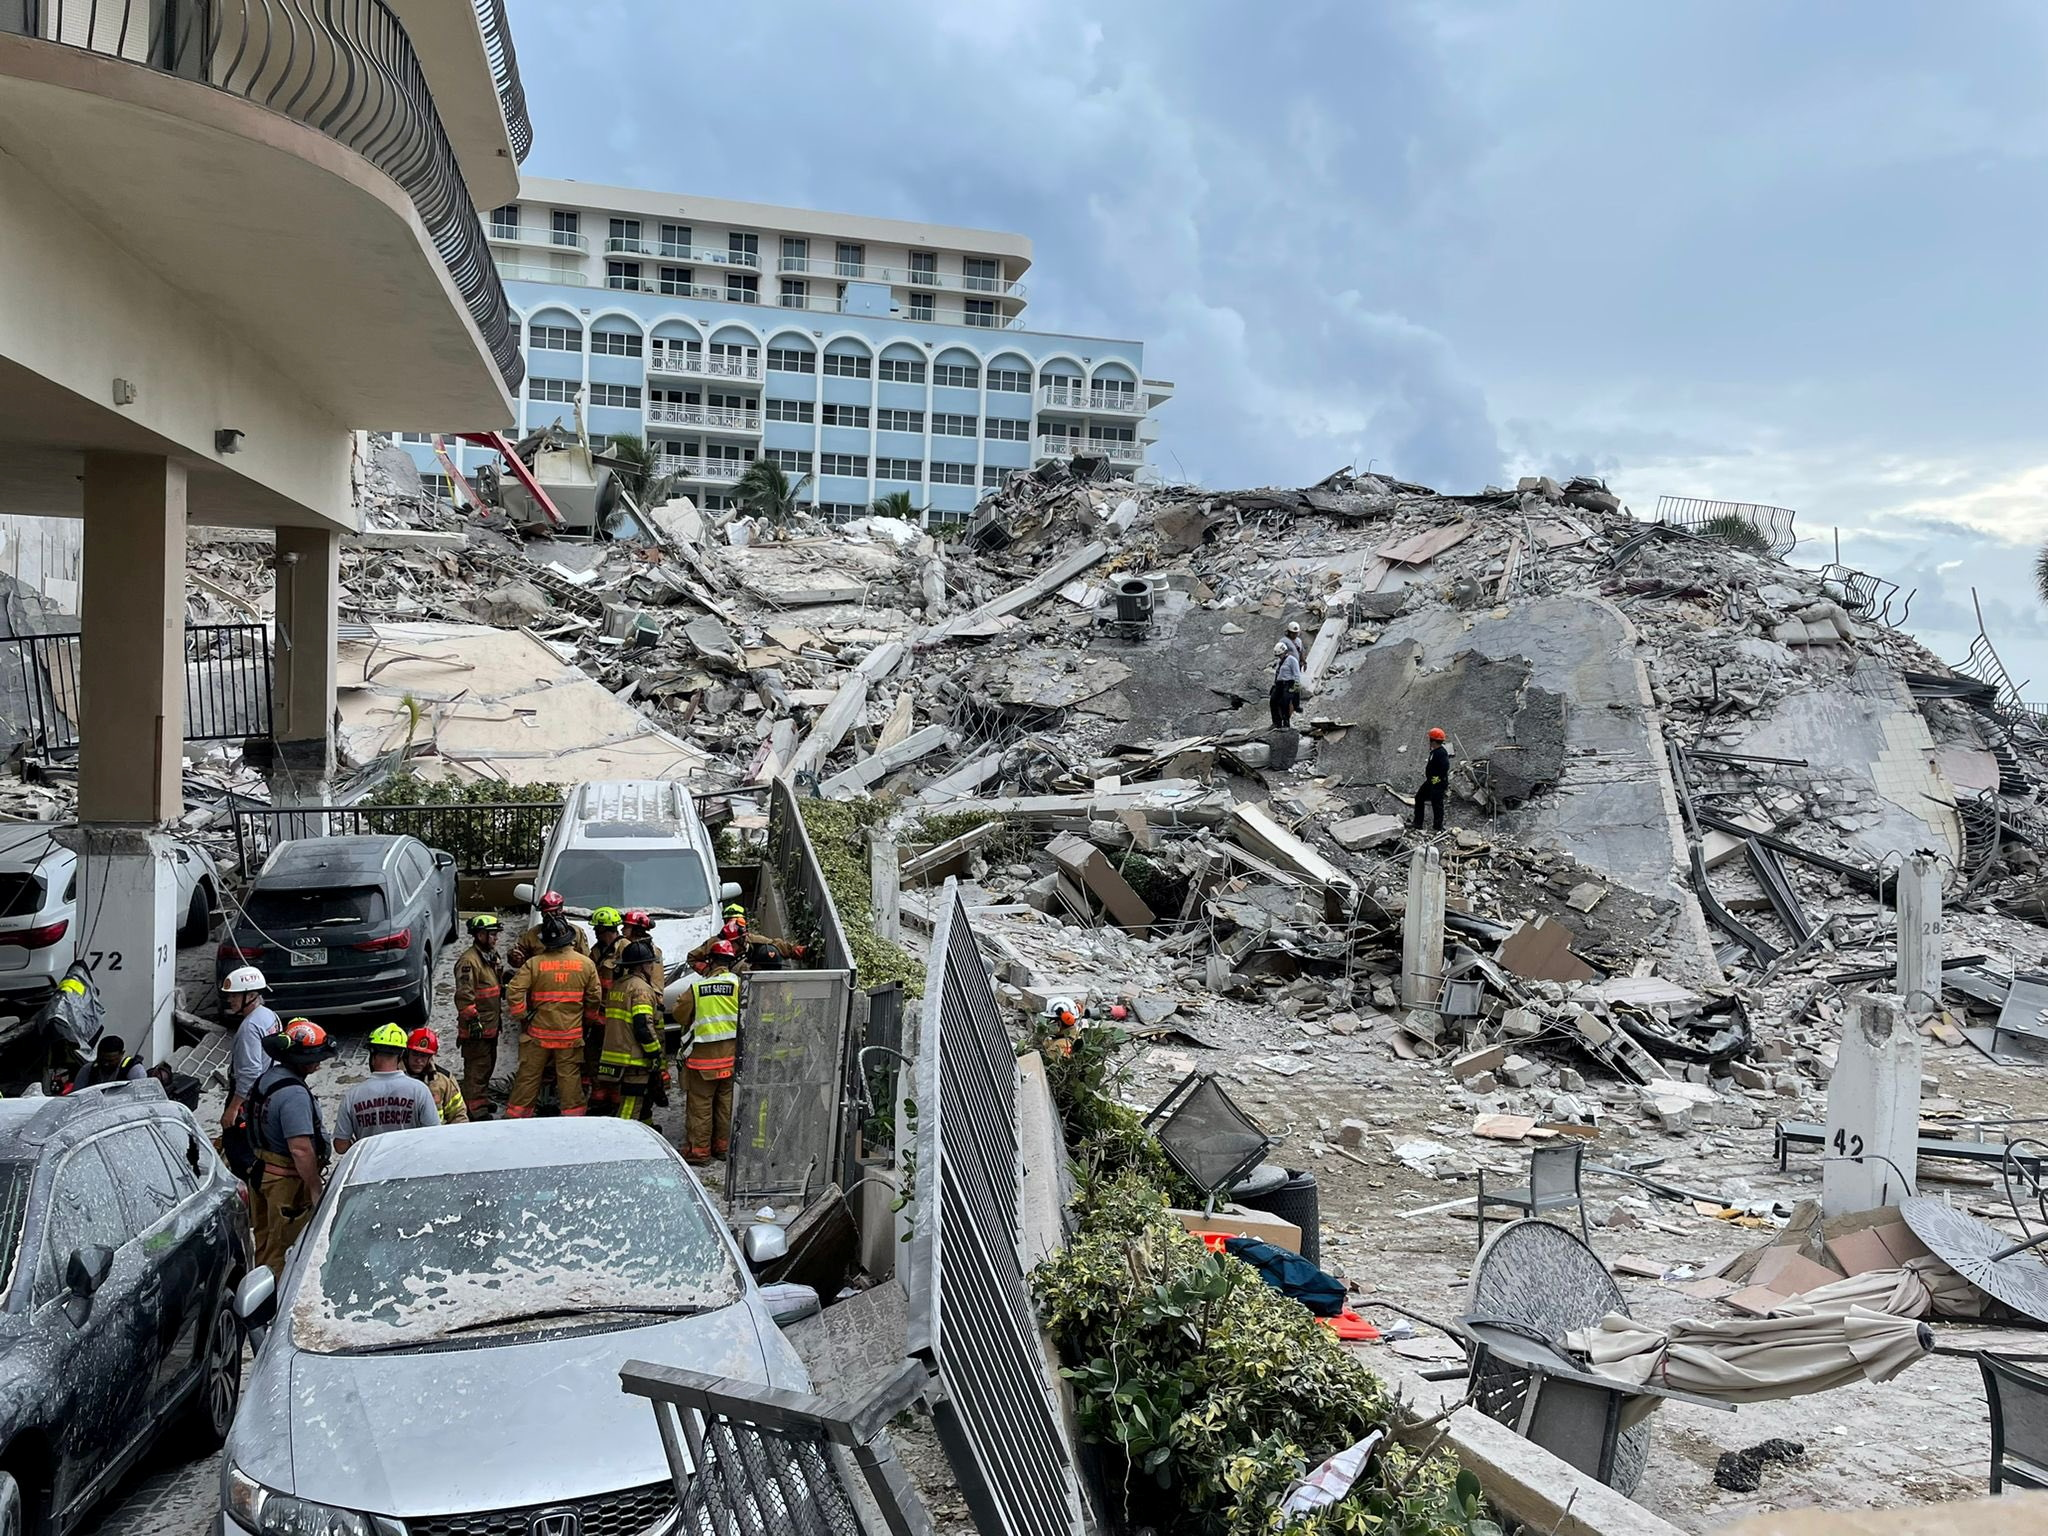 Task Forces from Mexico and Israel Join Search for Survivors After Surfside Condo Collapse